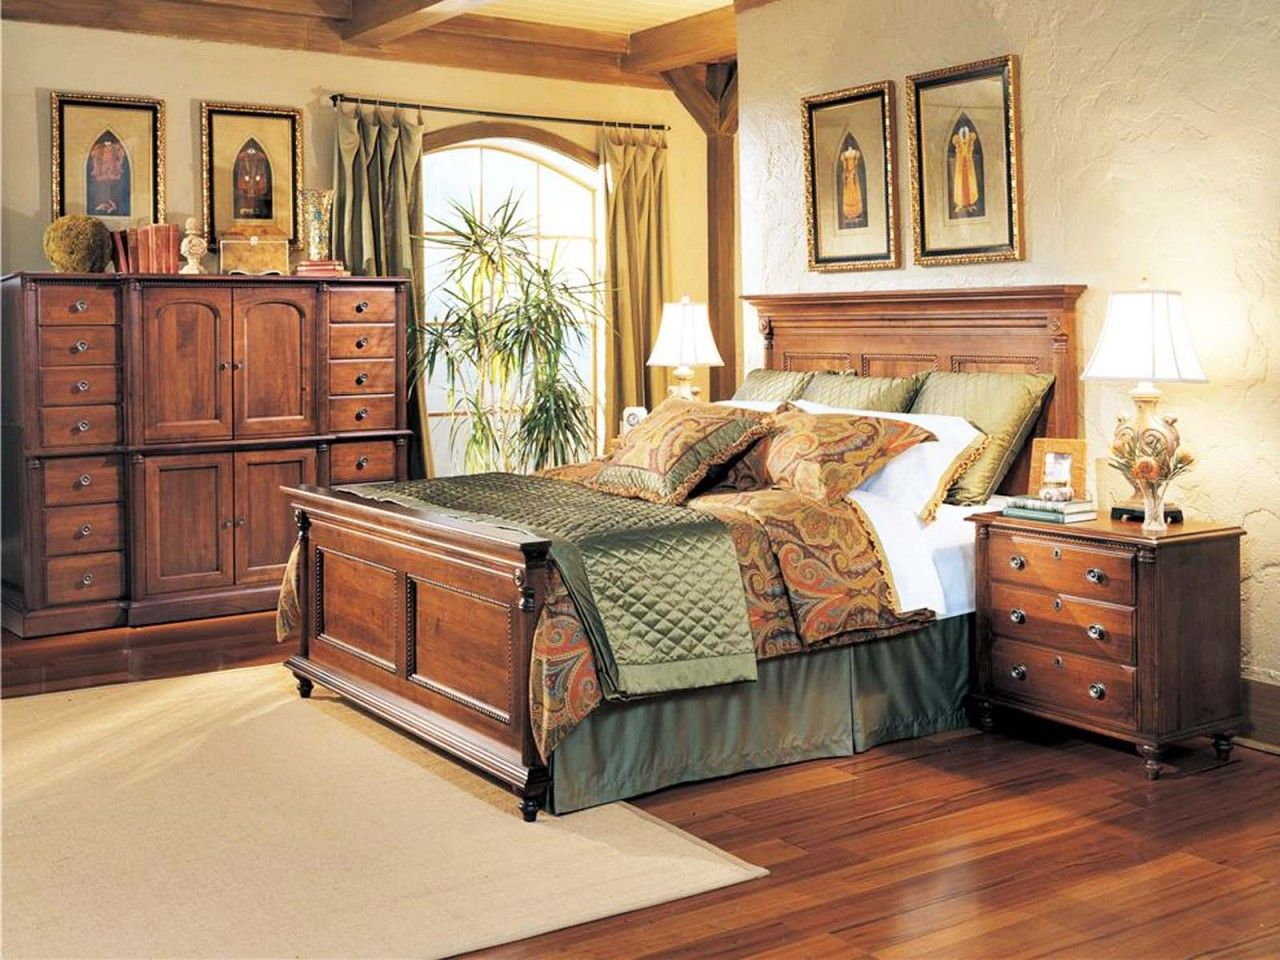 durham furniture savile row 4-piece panel bedroom set in victorian